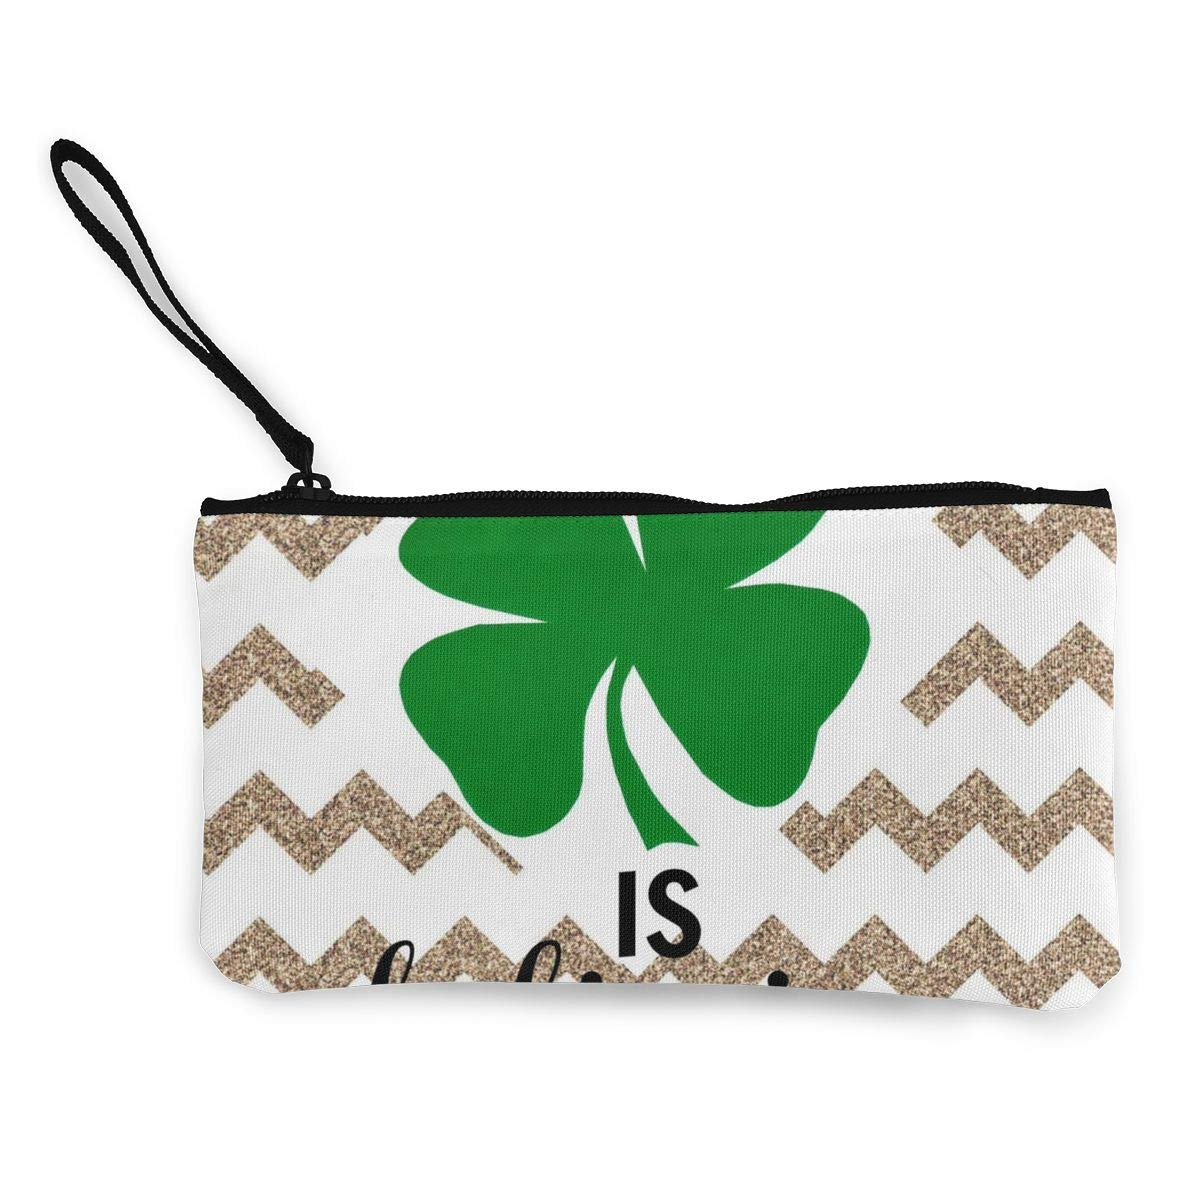 Maple Memories St.Patricks Day Shamrocks Portable Canvas Coin Purse Change Purse Pouch Mini Wallet Gifts For Women Girls